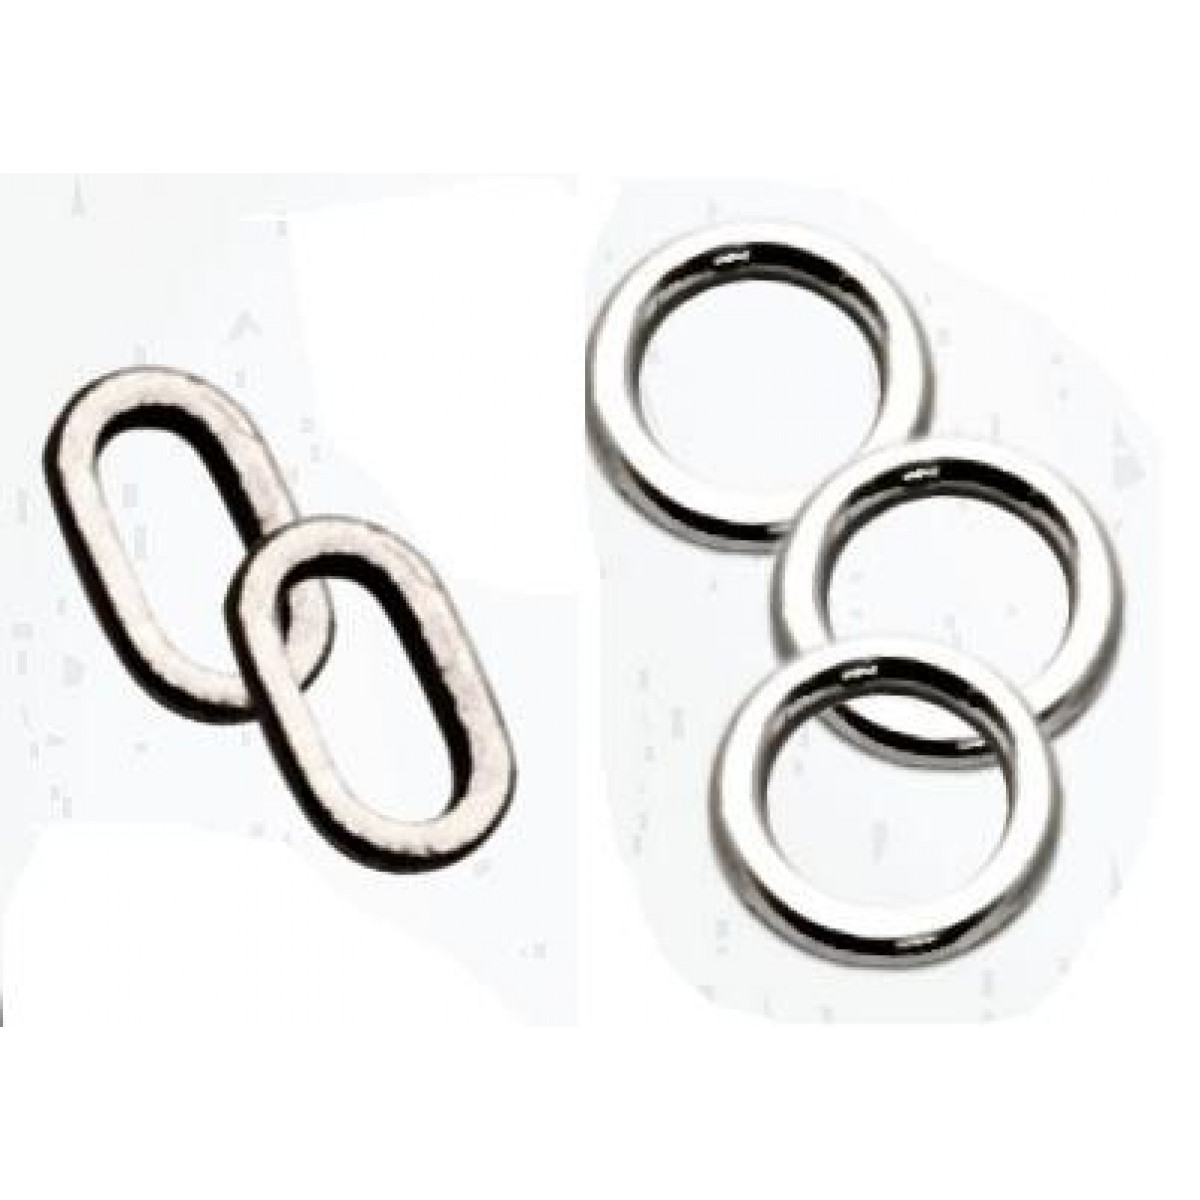 Oval / Round Rings